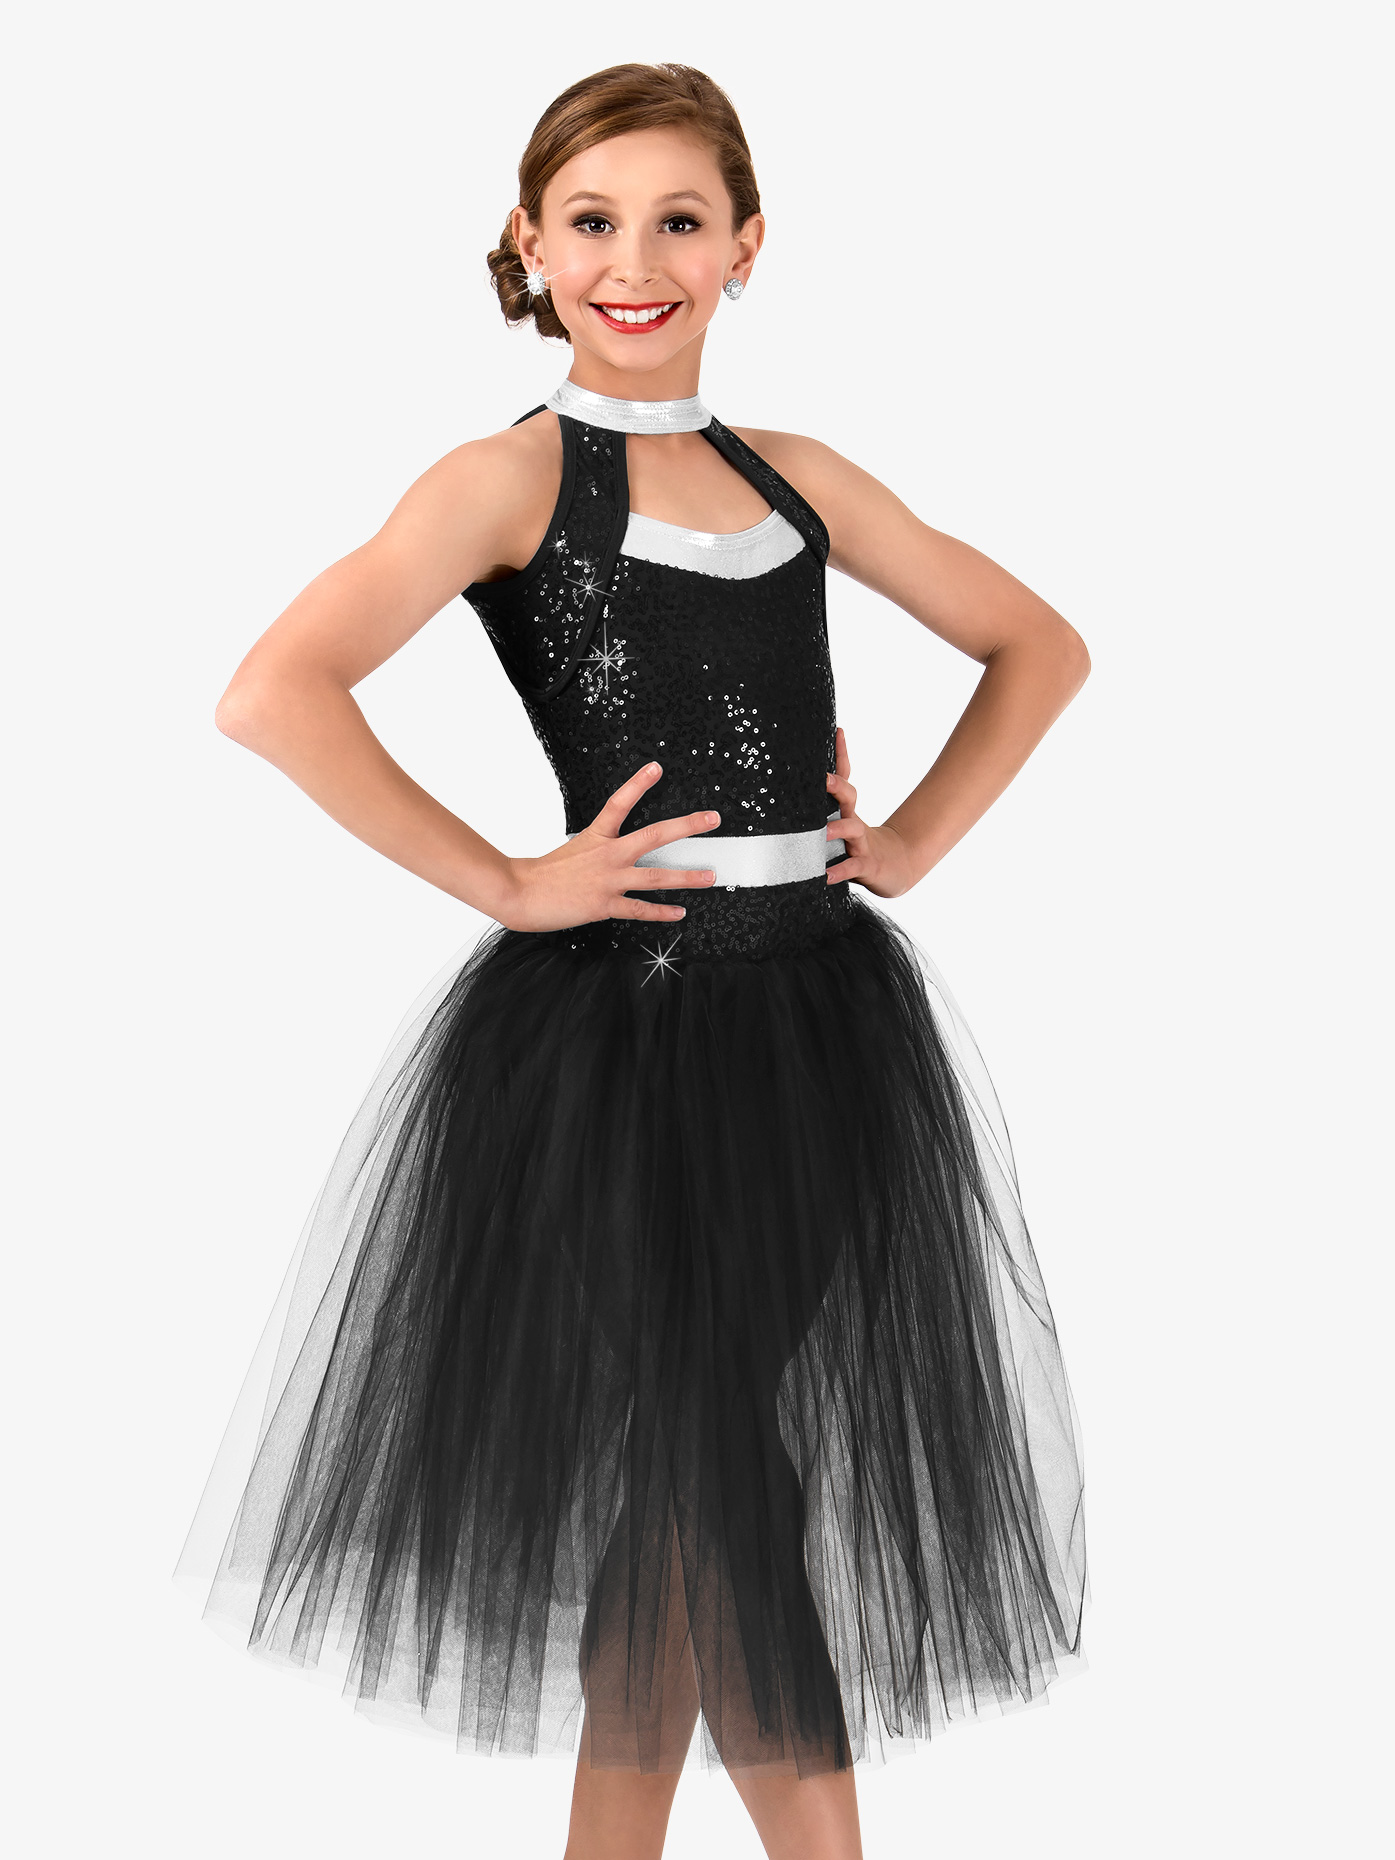 59c934693058 Elisse by Double Platinum Dancewear at DancewearDeals.com